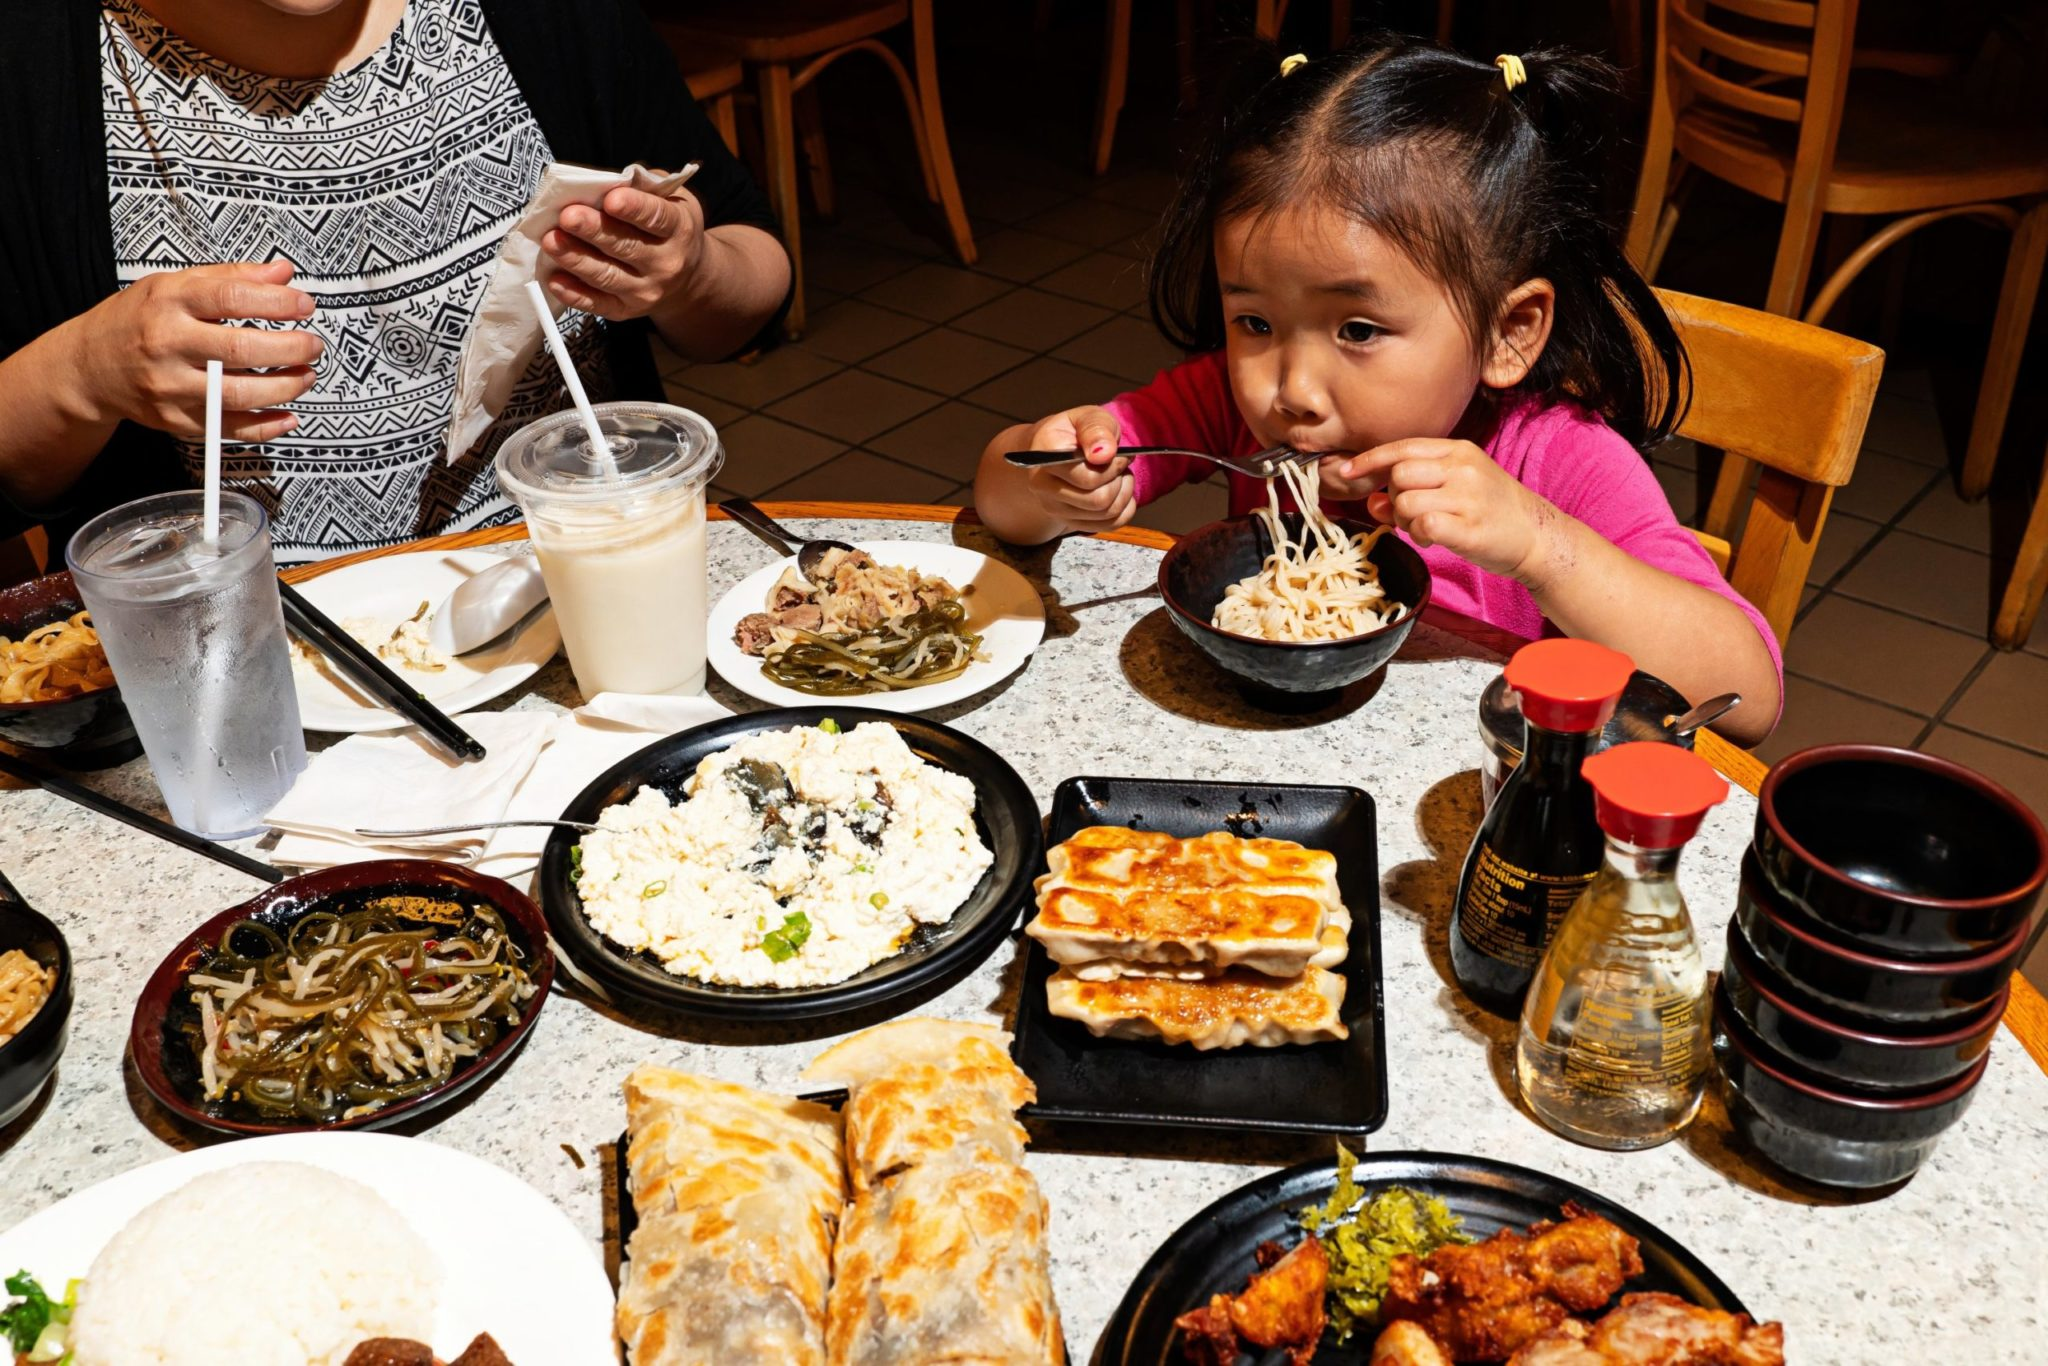 Restaurants Open Christmas In Dc 2020 Where to Get the Best Chinese Food Around DC on Christmas Day